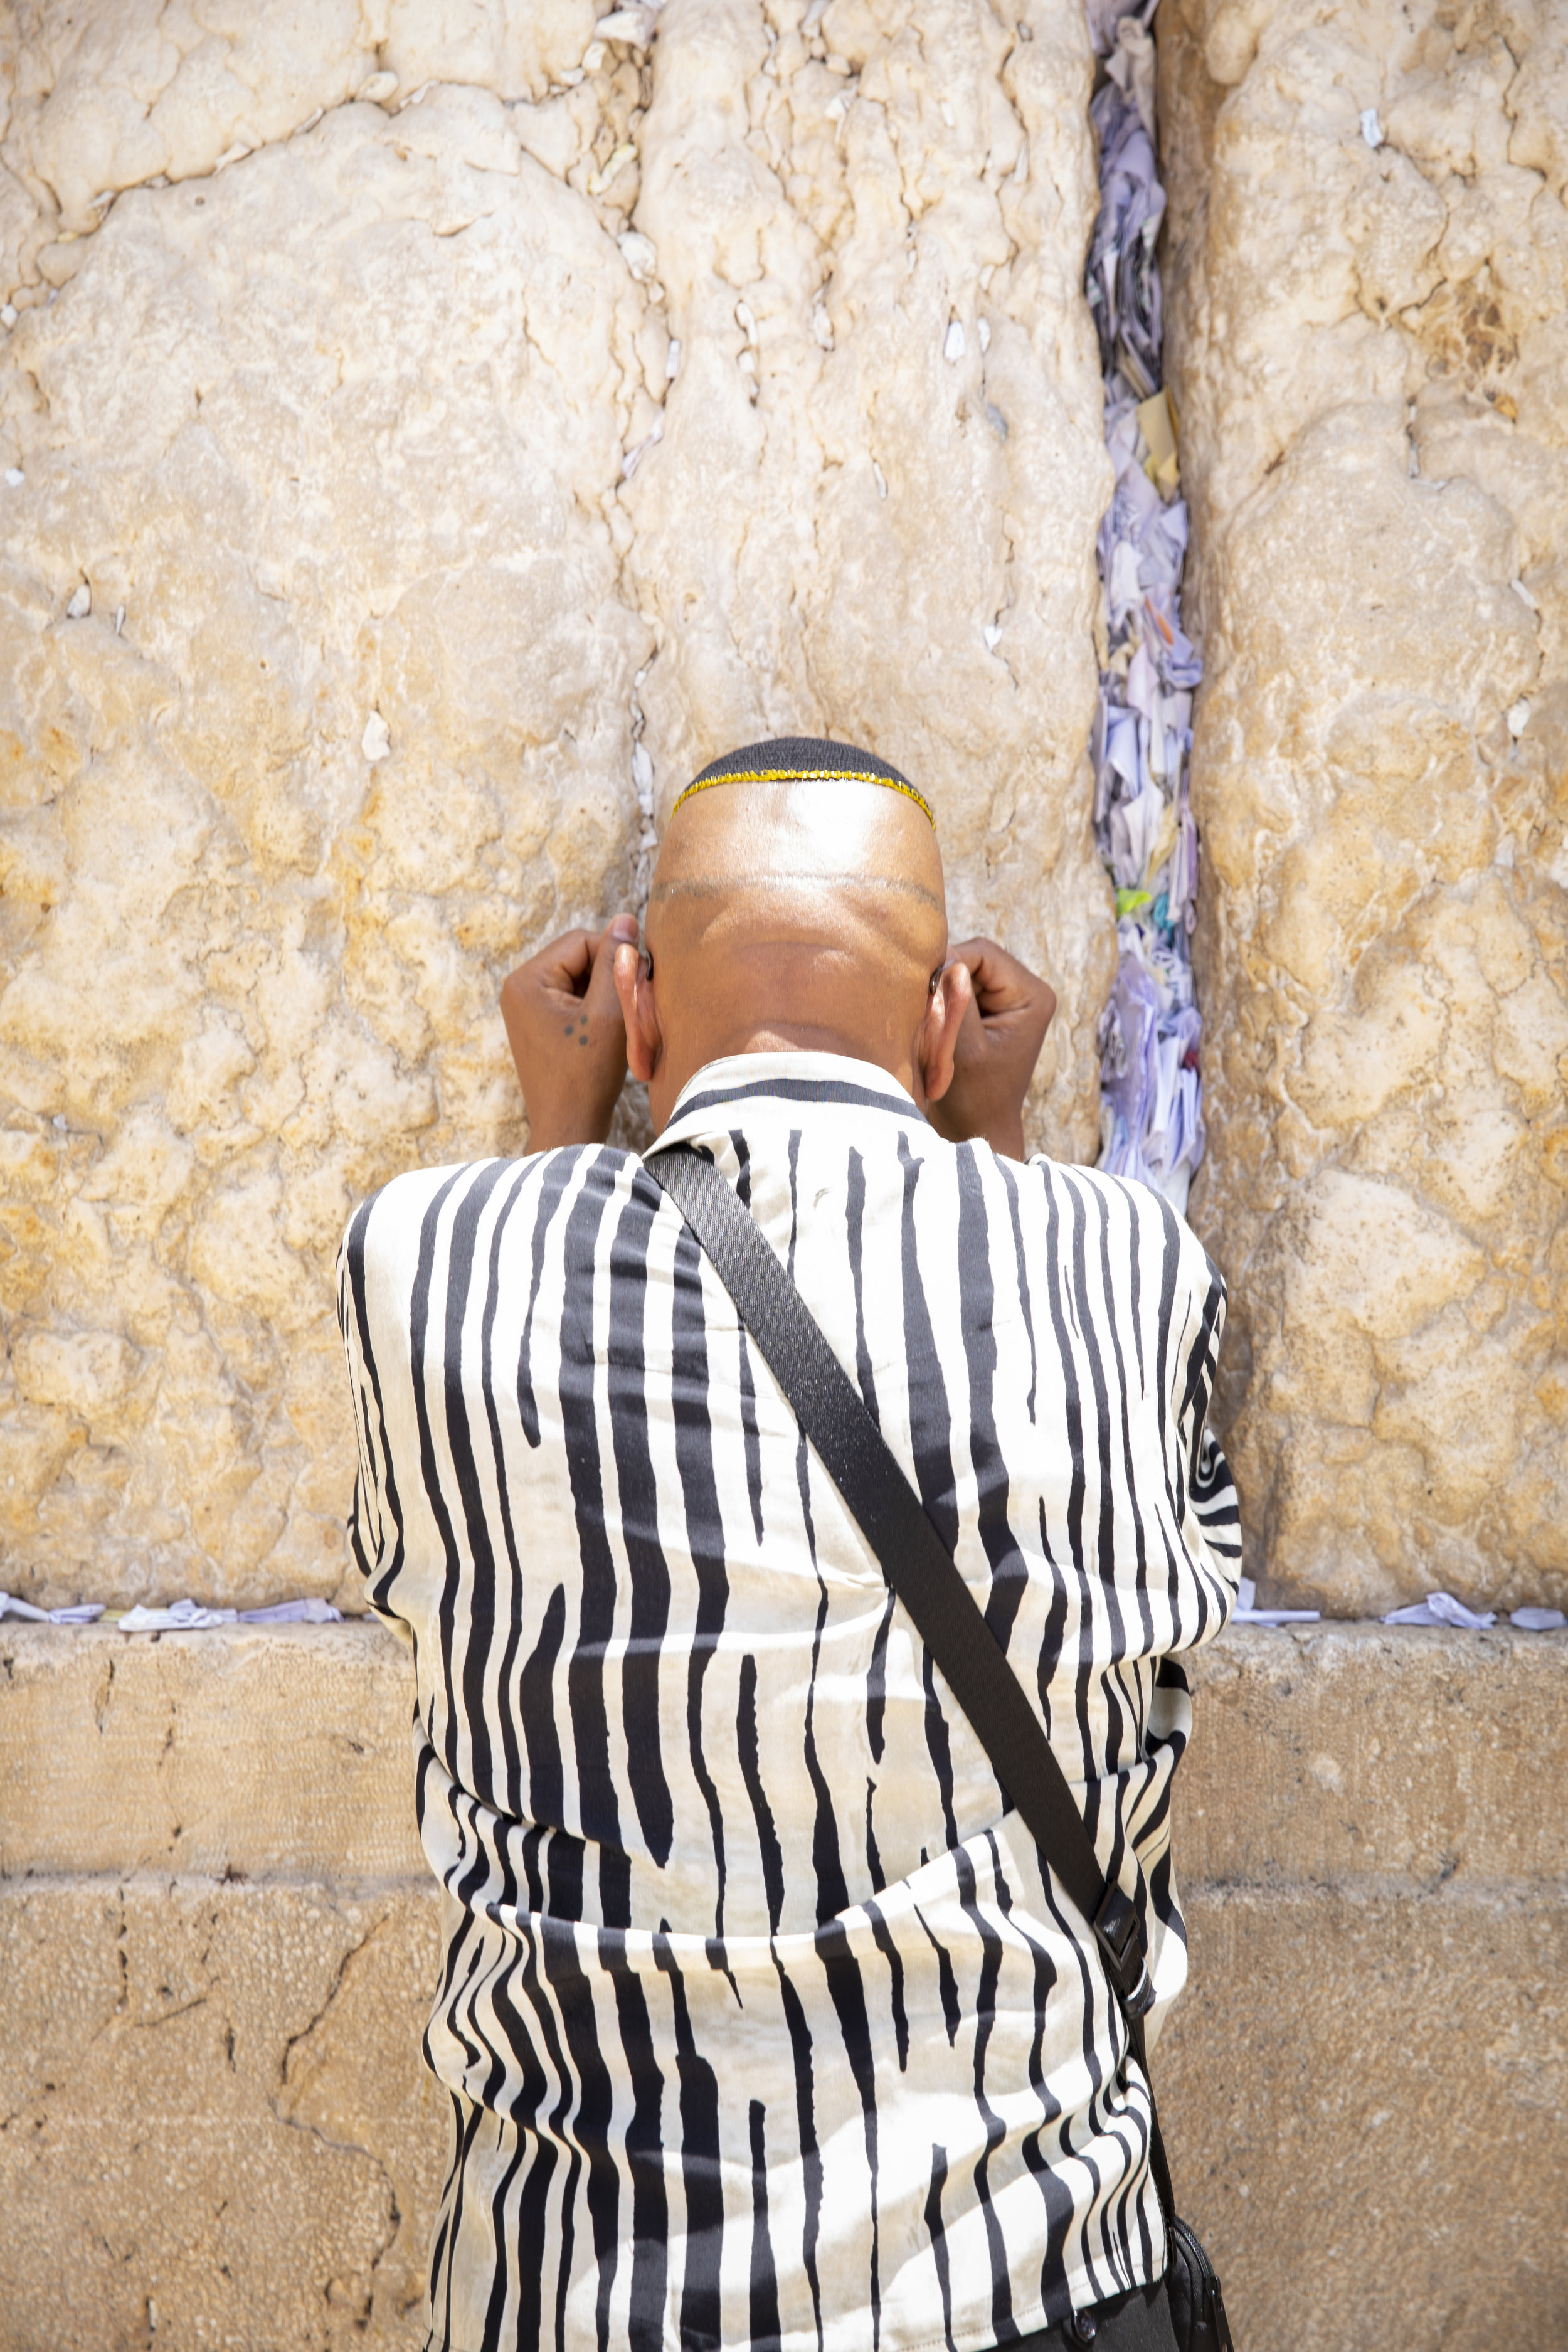 A man leans against the Western Wall in Jerusalem and prays after stuffing a note into the crack of the wall.